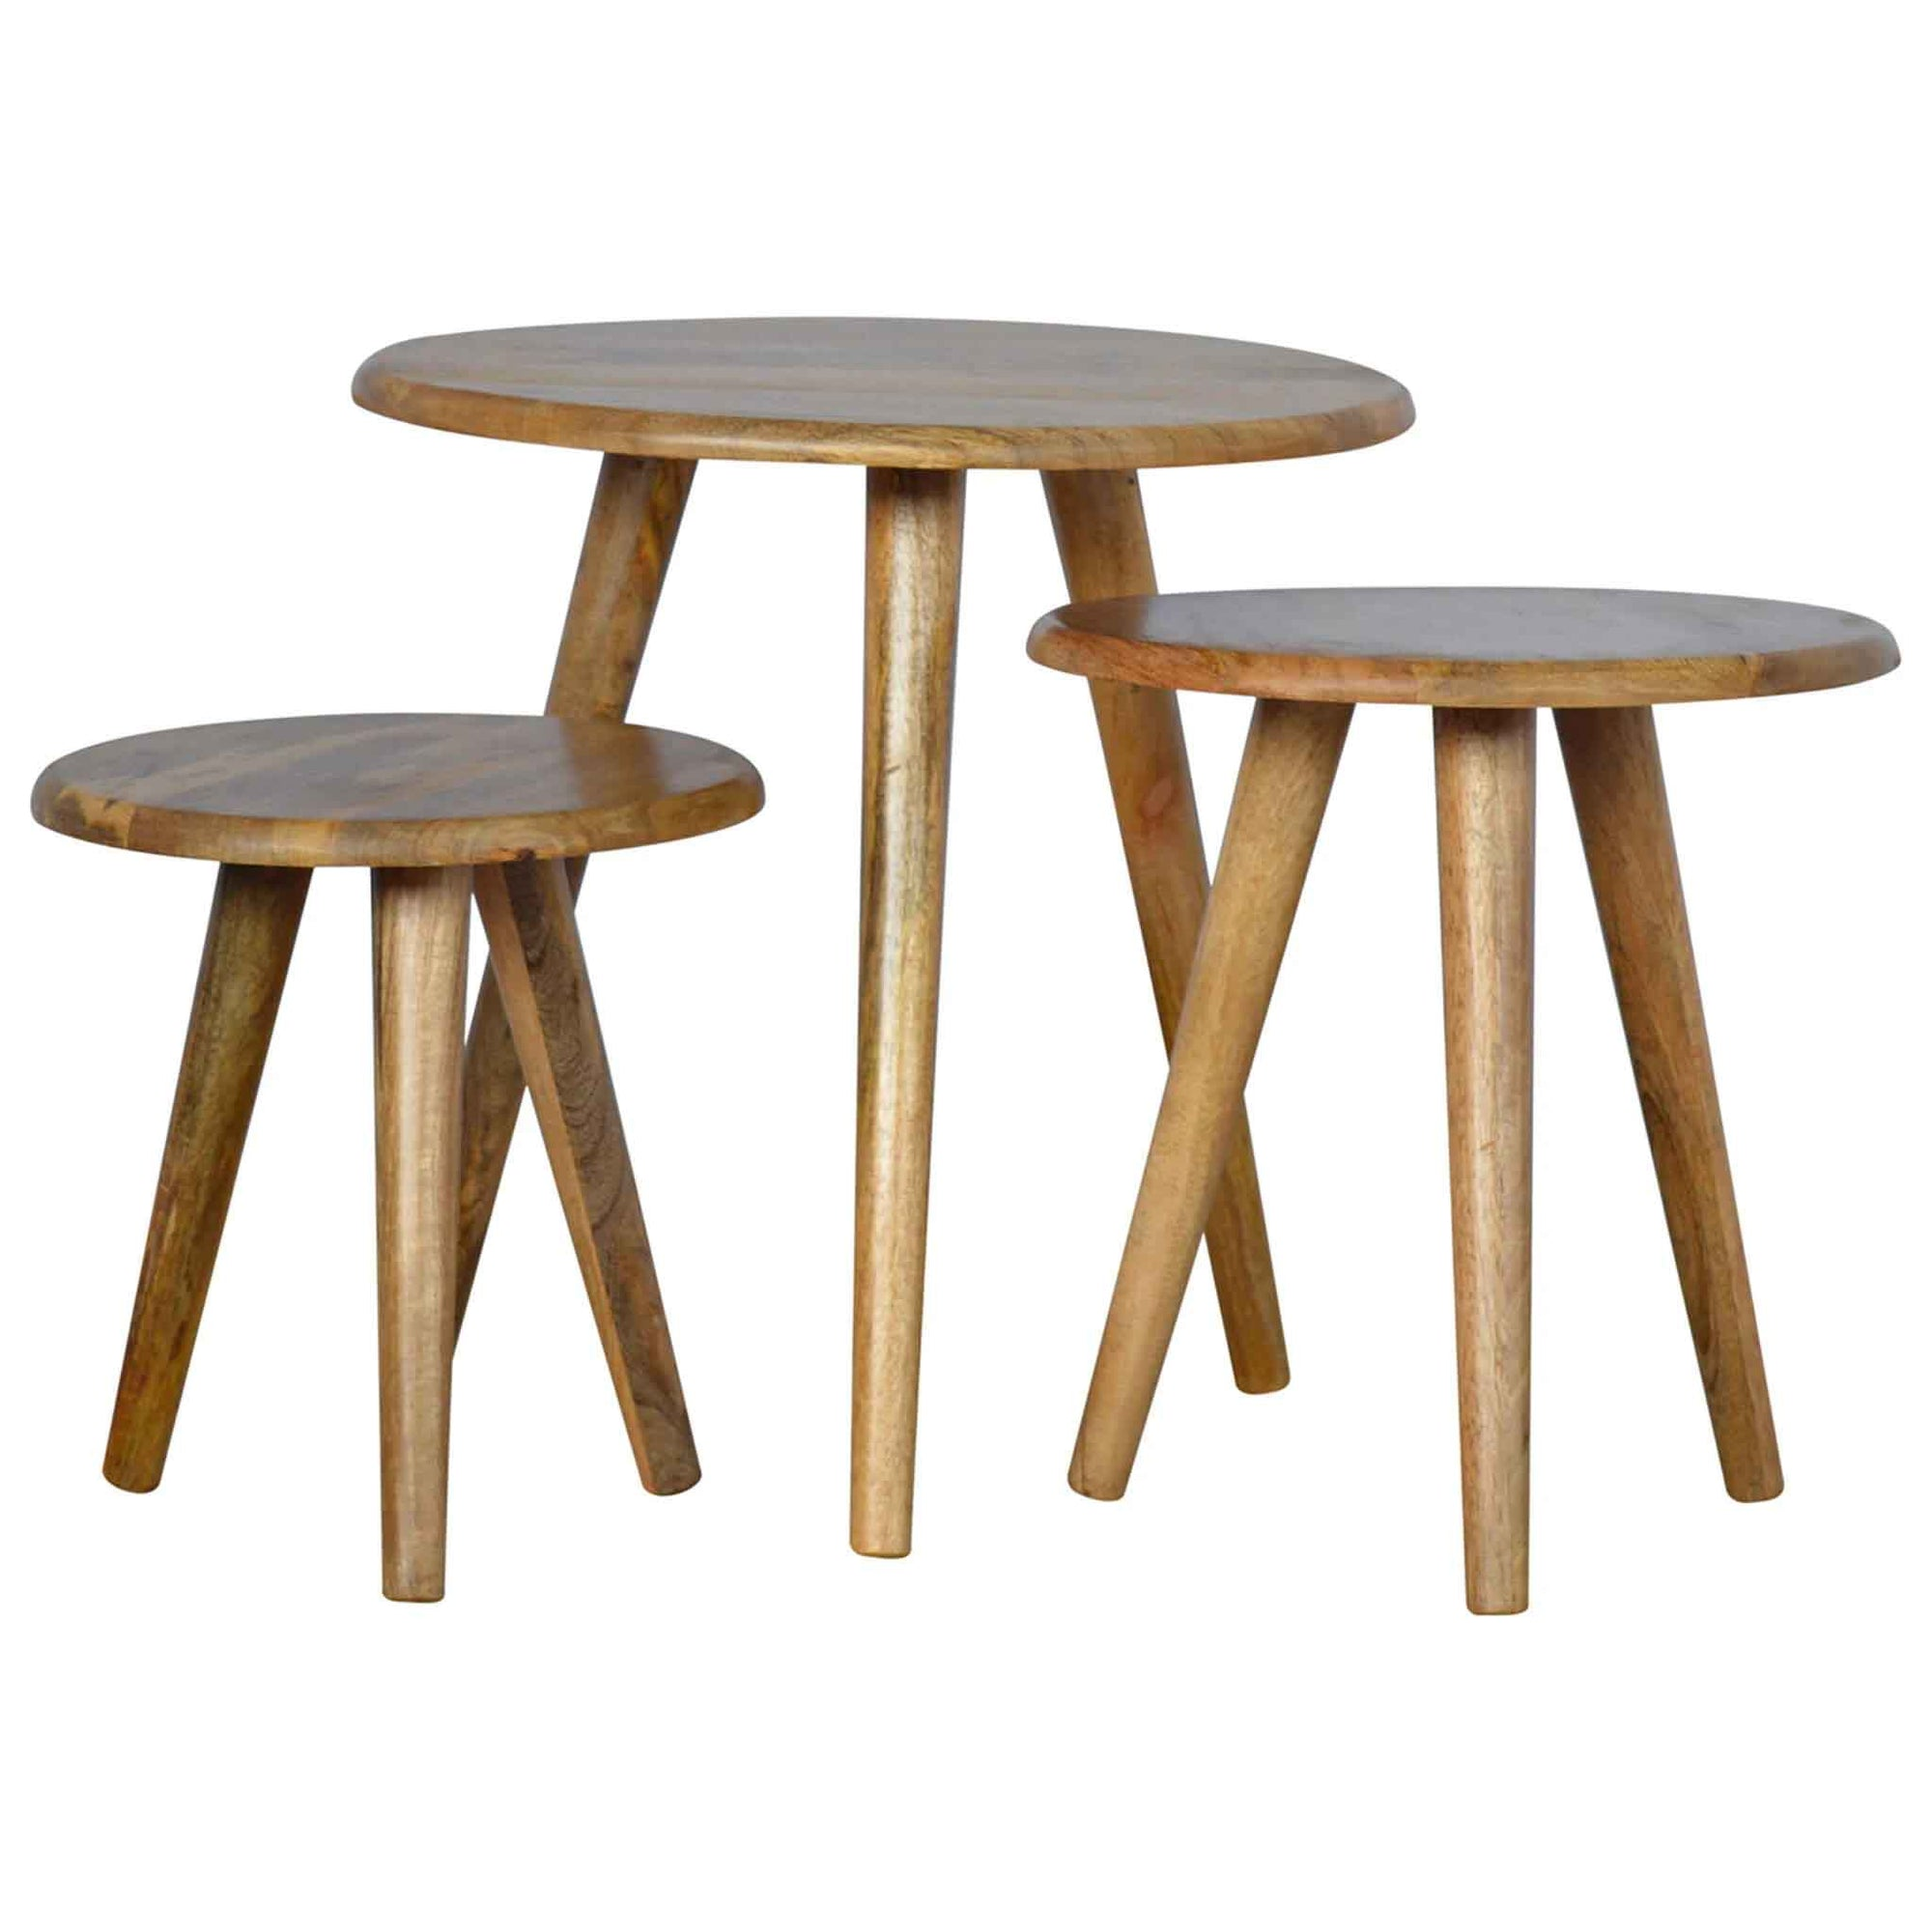 The Artisan Scandinavian Mango Nest of 3 Tables from Roseland Furniture